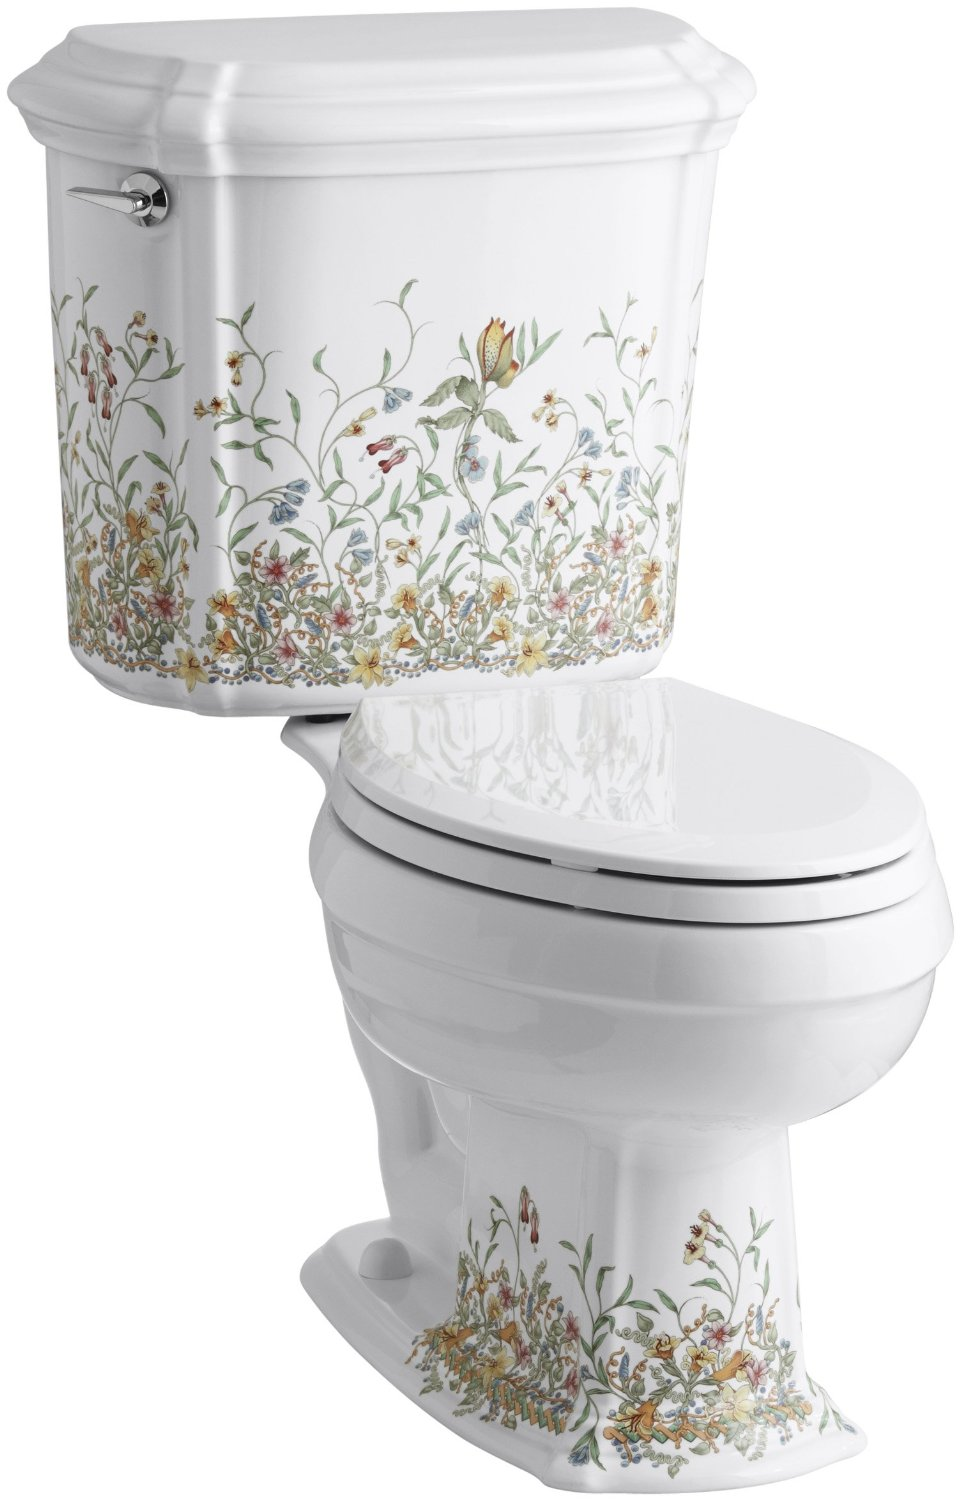 Kohler English Trellis Design Toilet Review